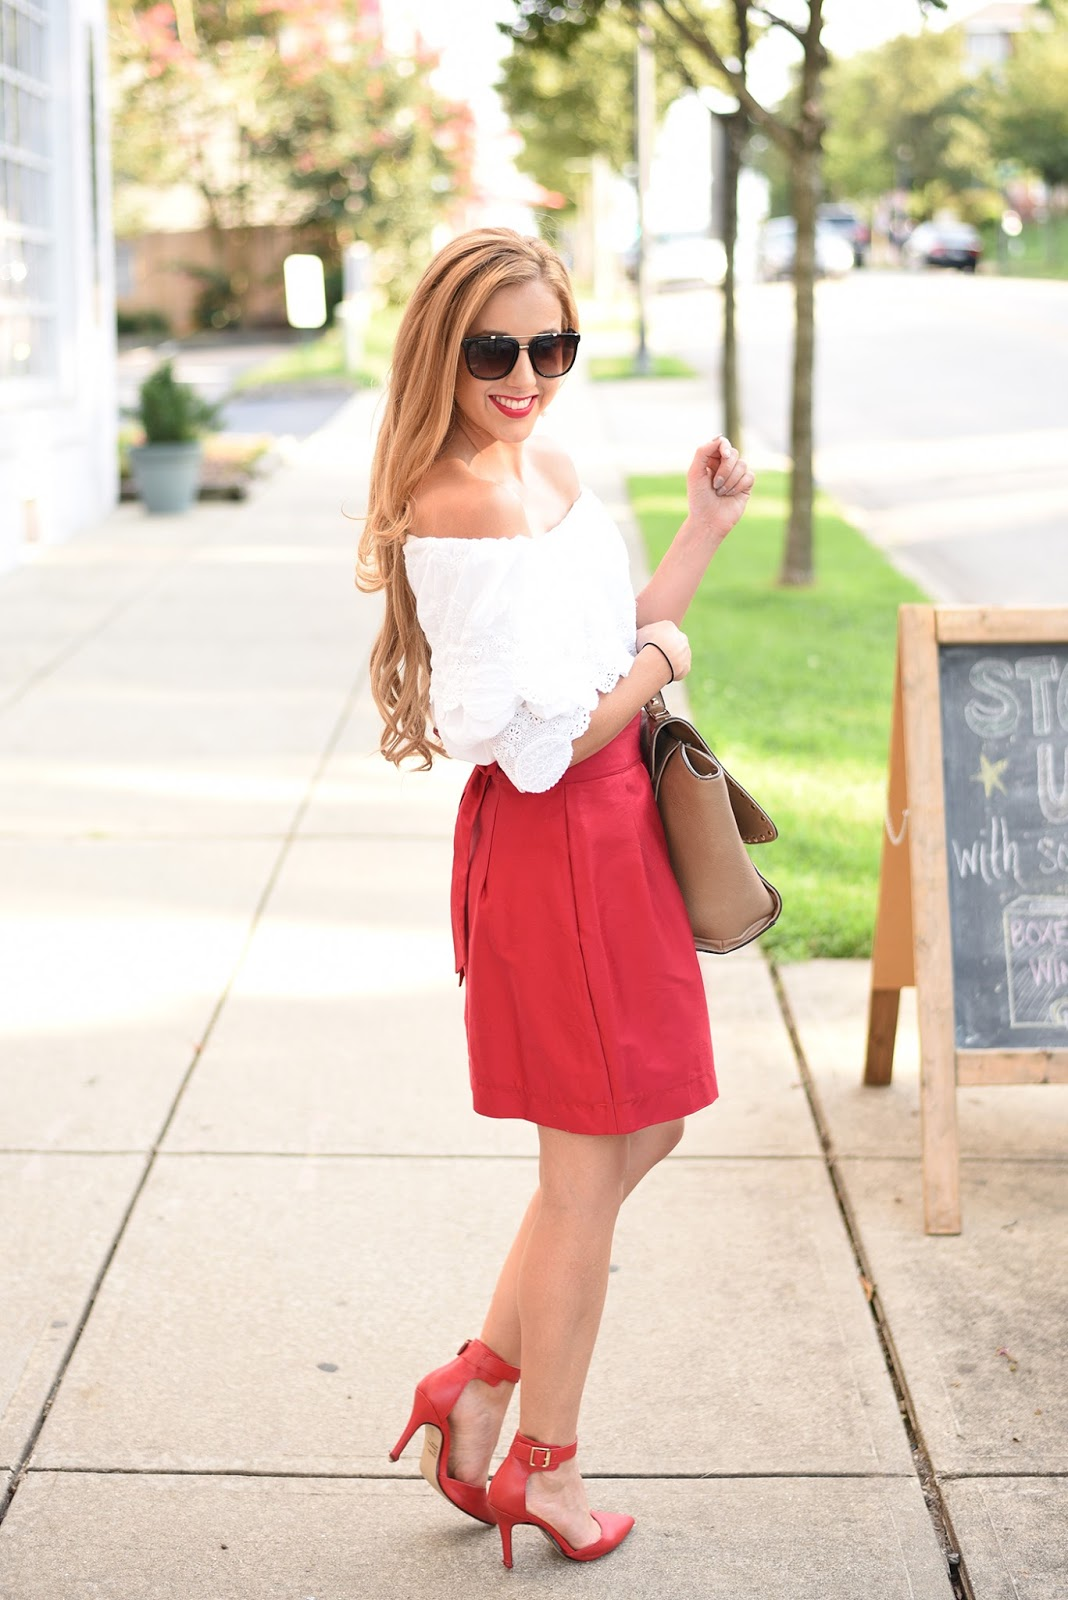 Fashion-blogger-sara-kate-styling-Steadman-Raleigh-blog-society-nc-frill-clothing